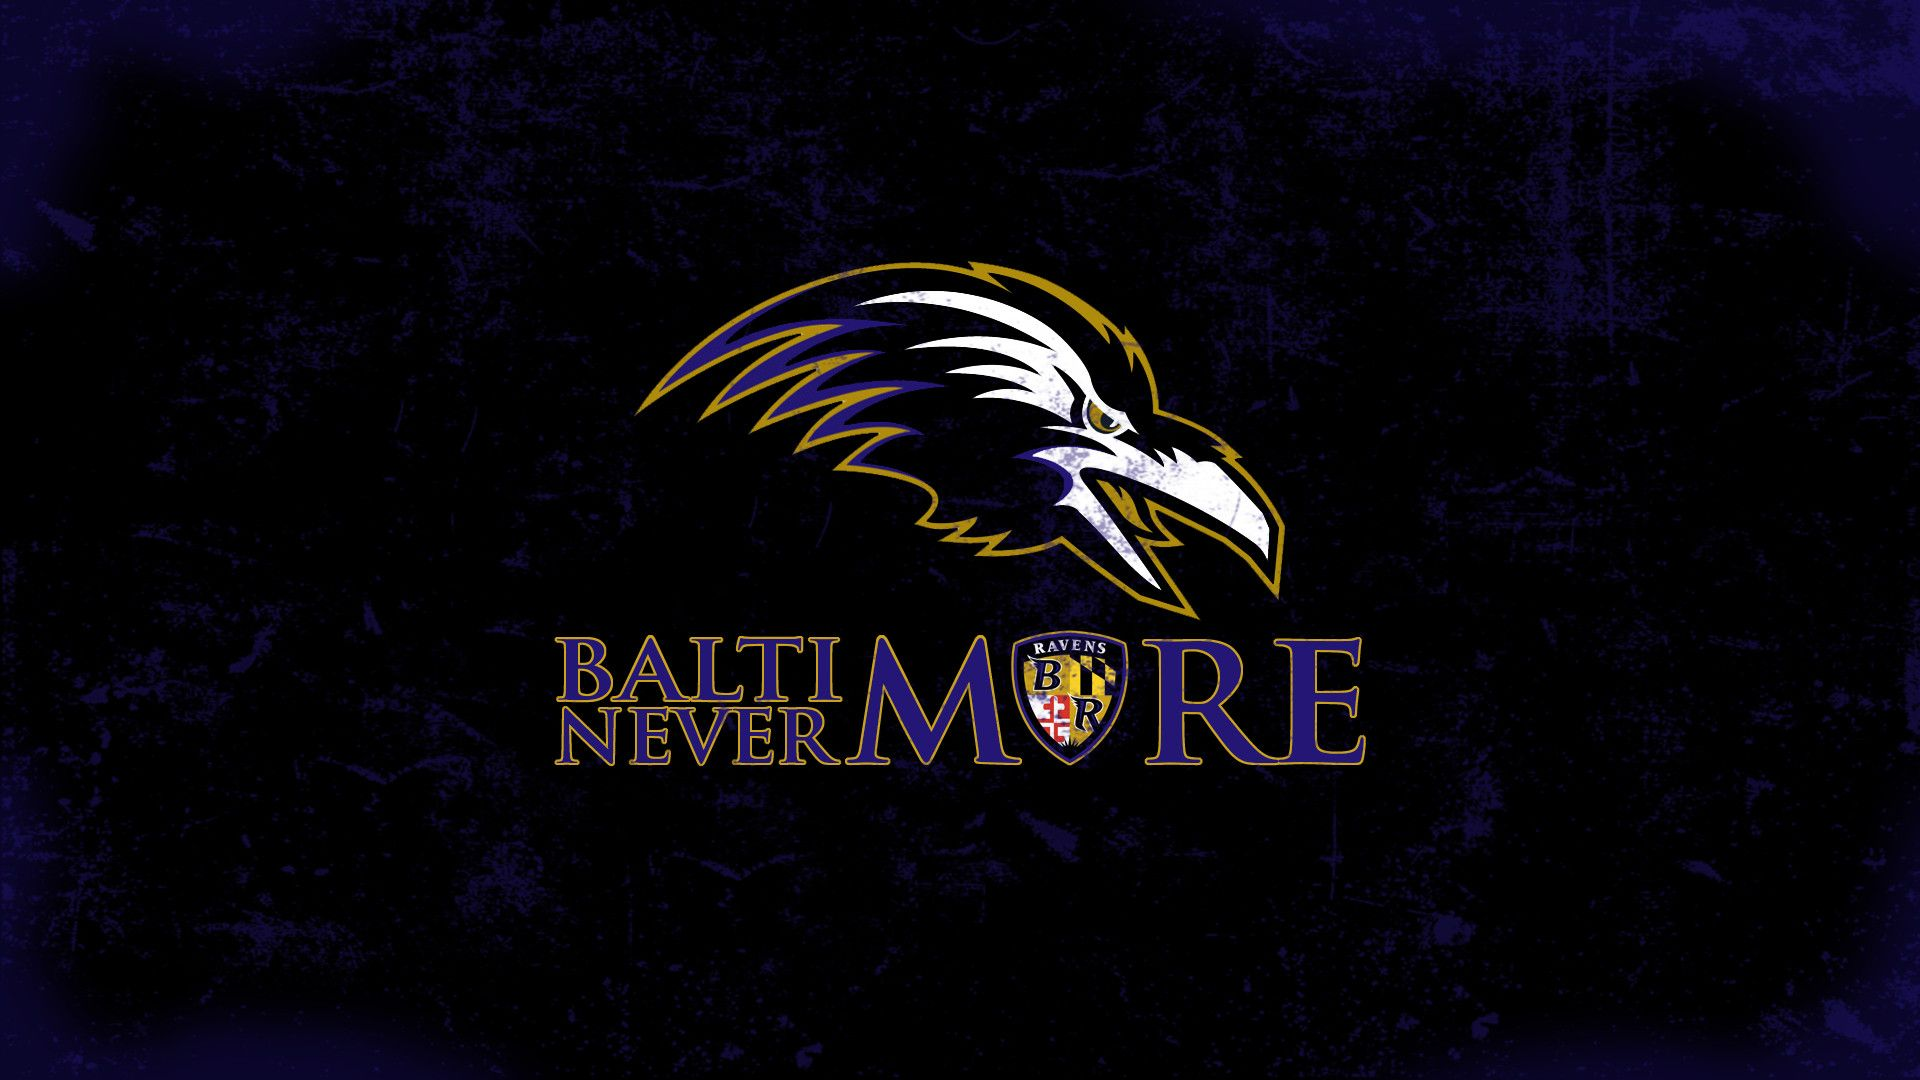 Download Baltimore Ravens Hd Wallpaper HD Backgrounds Download 1920x1080